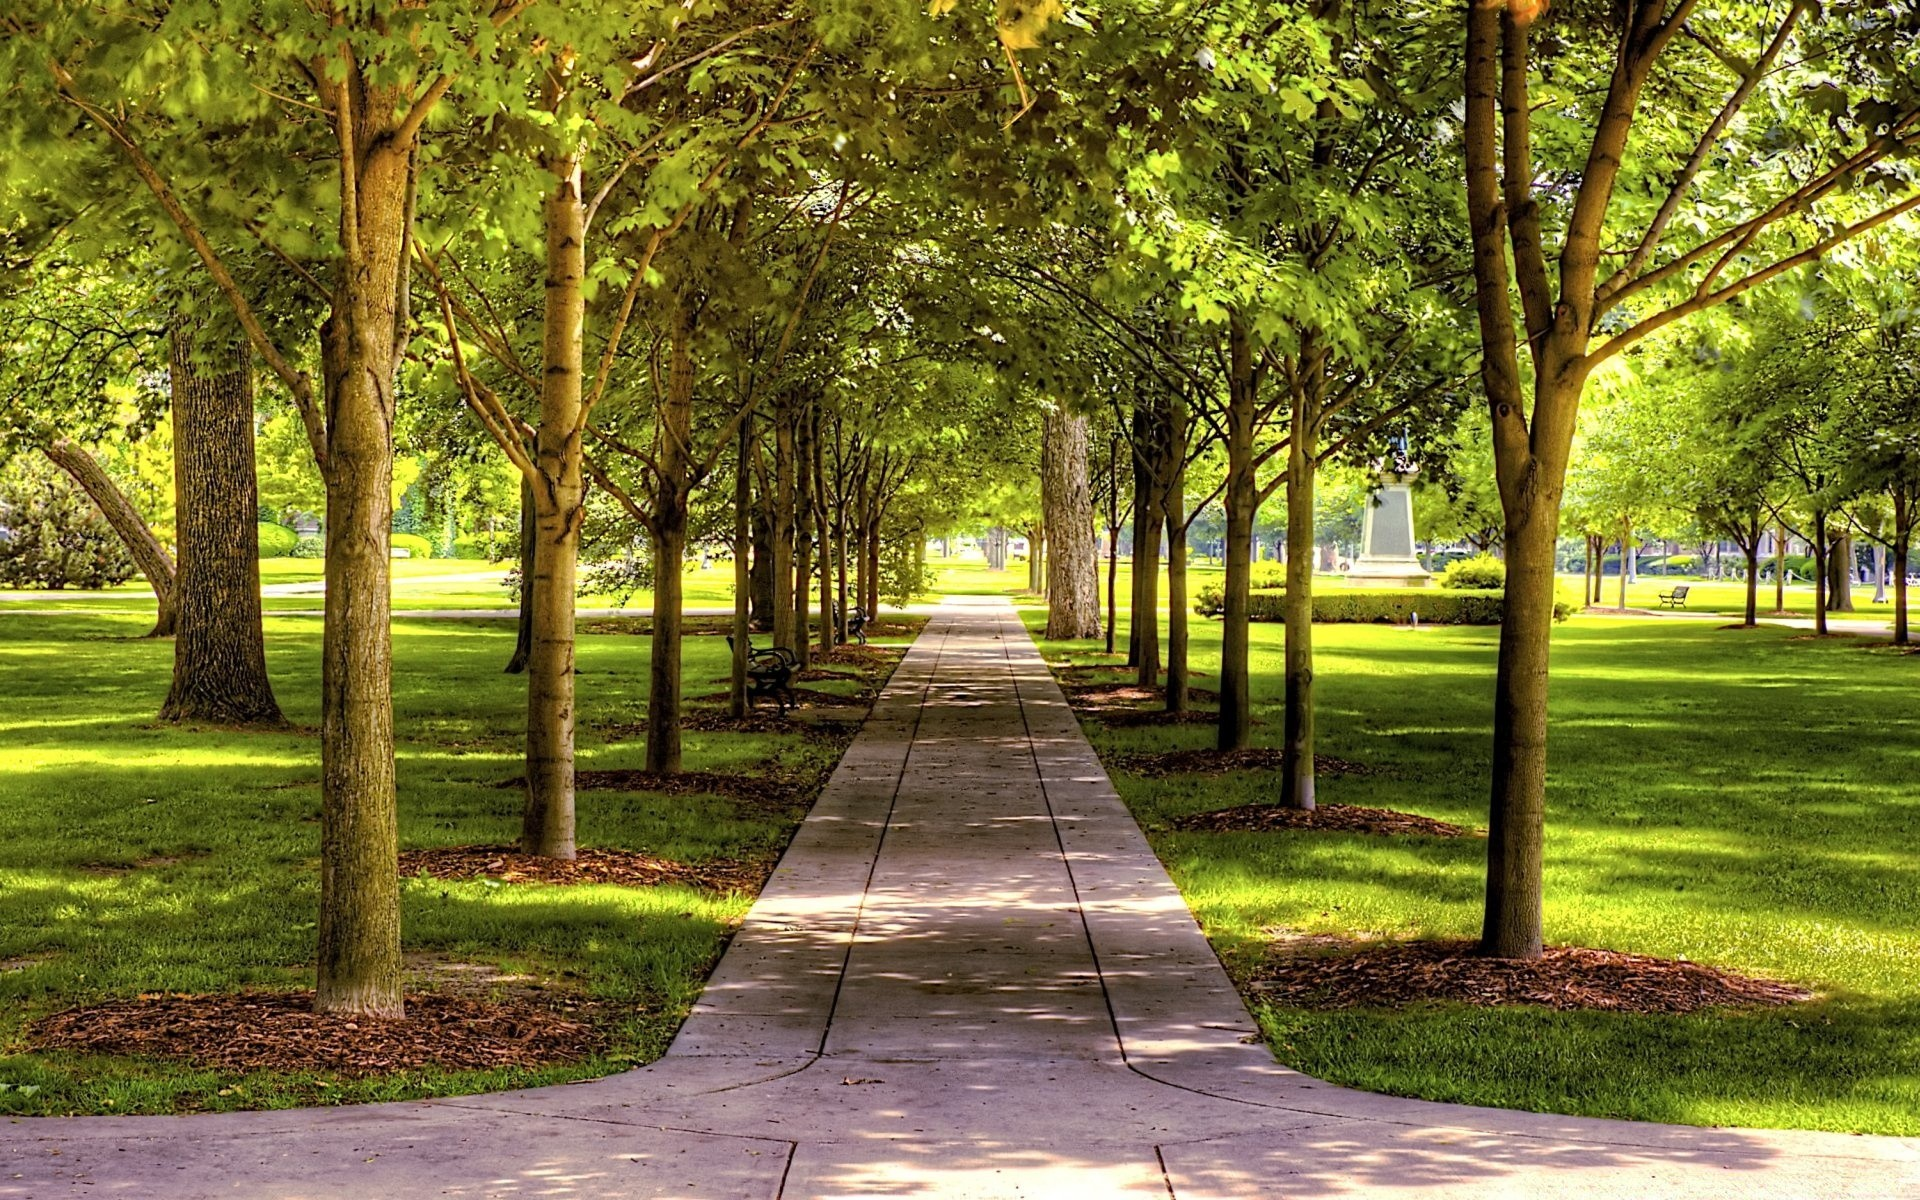 Simply fashions forest park Simply stated, Warren Forest Park is exceptional